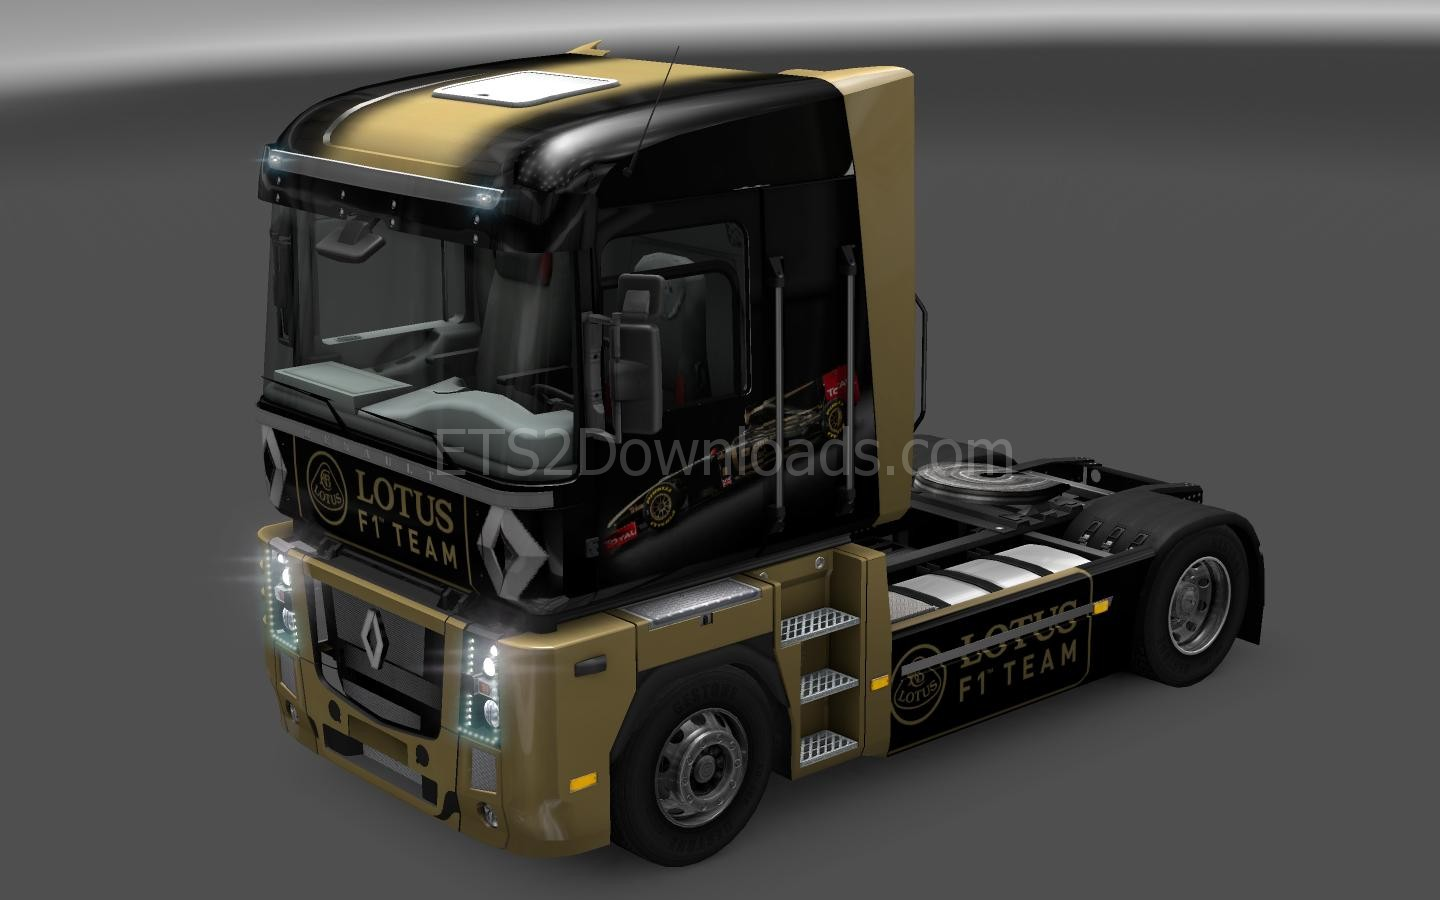 f1-lotus-skin-for-renault-magnum-ets2-1